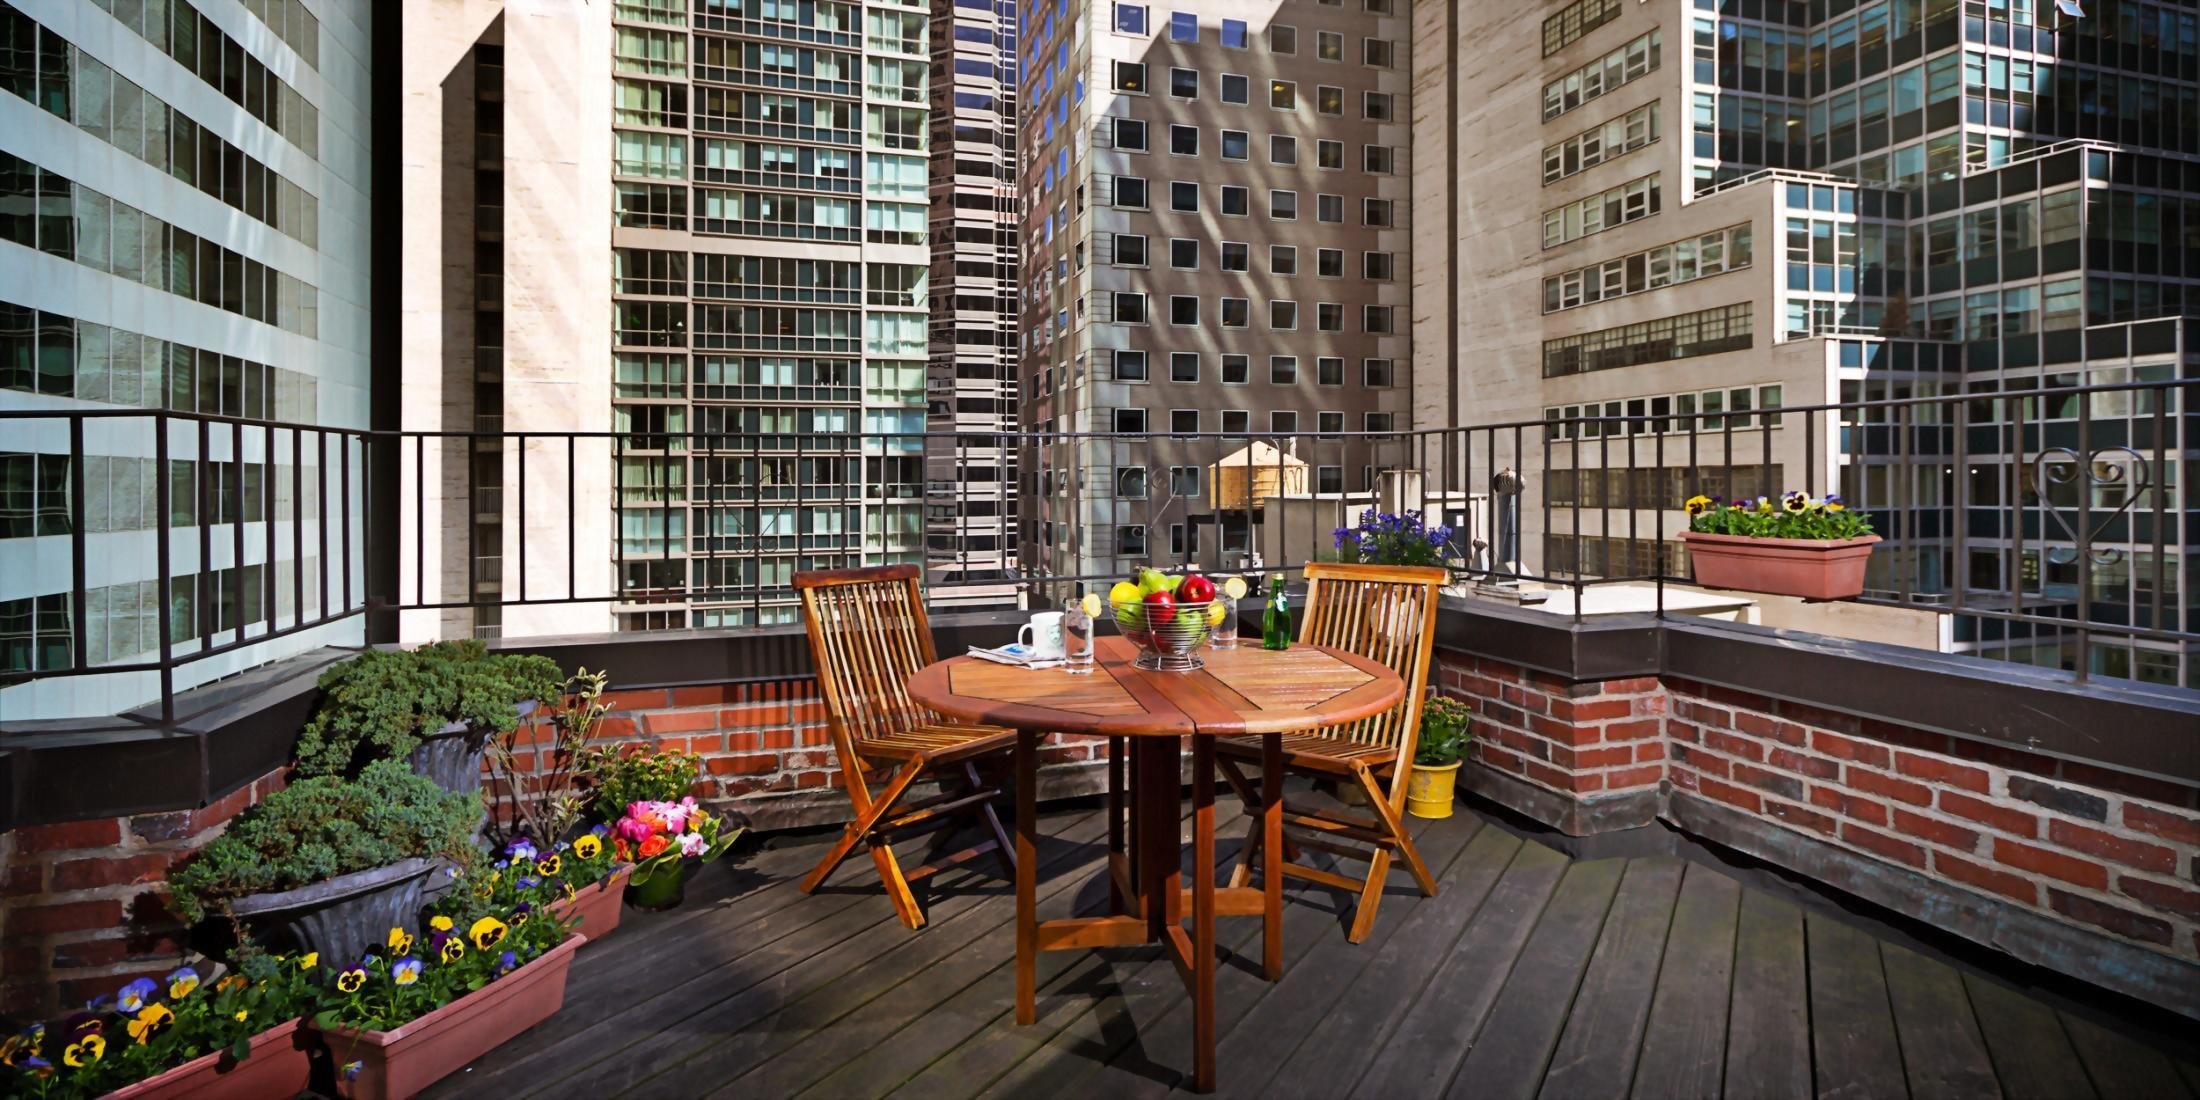 Outdoor Terrace only available in 4 very special rooms at the Hotel Elysee in New York City.